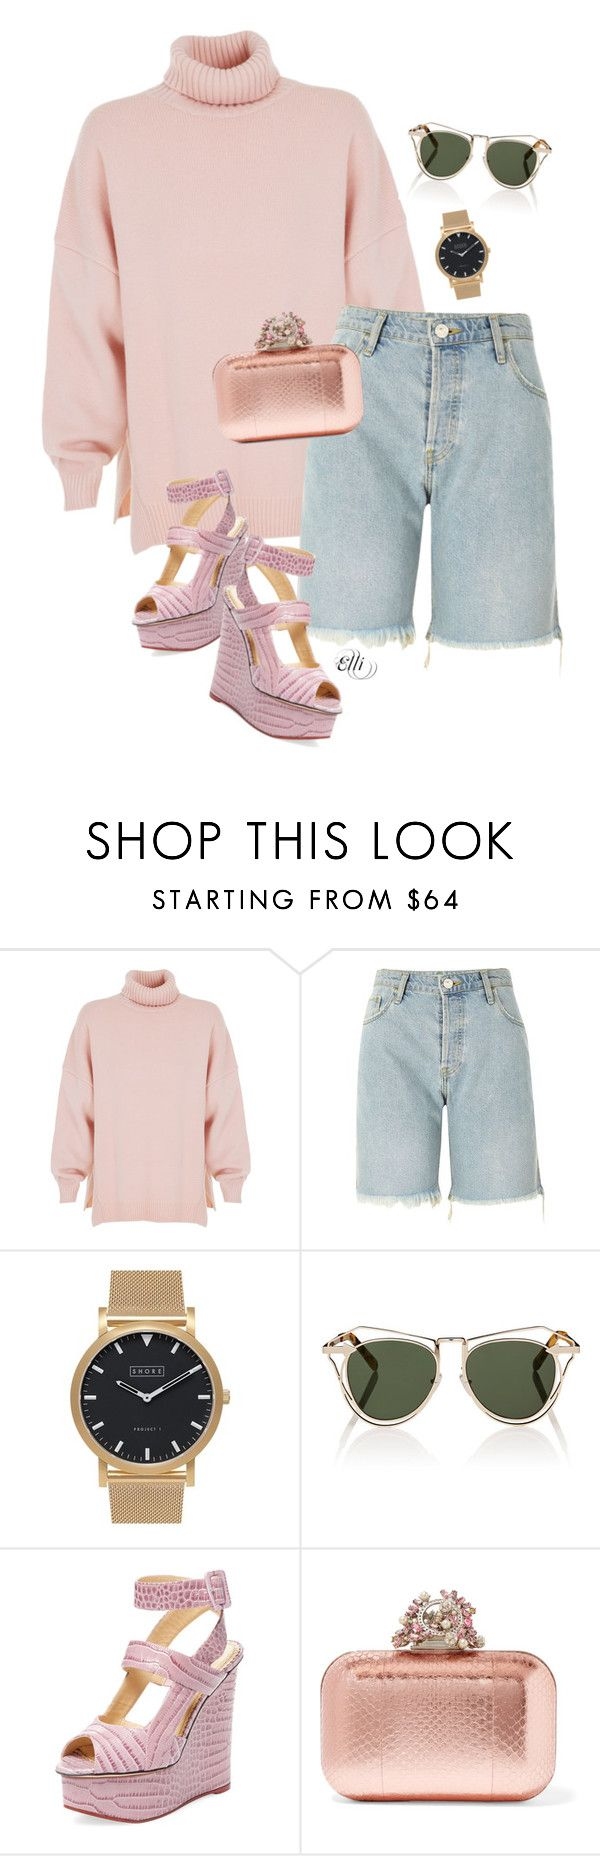 """""""Untitled #1040"""" by elli-skouf ❤ liked on Polyvore featuring TIBI, River Island, Shore Projects, Karen Walker, Charlotte Olympia and Jimmy Choo"""